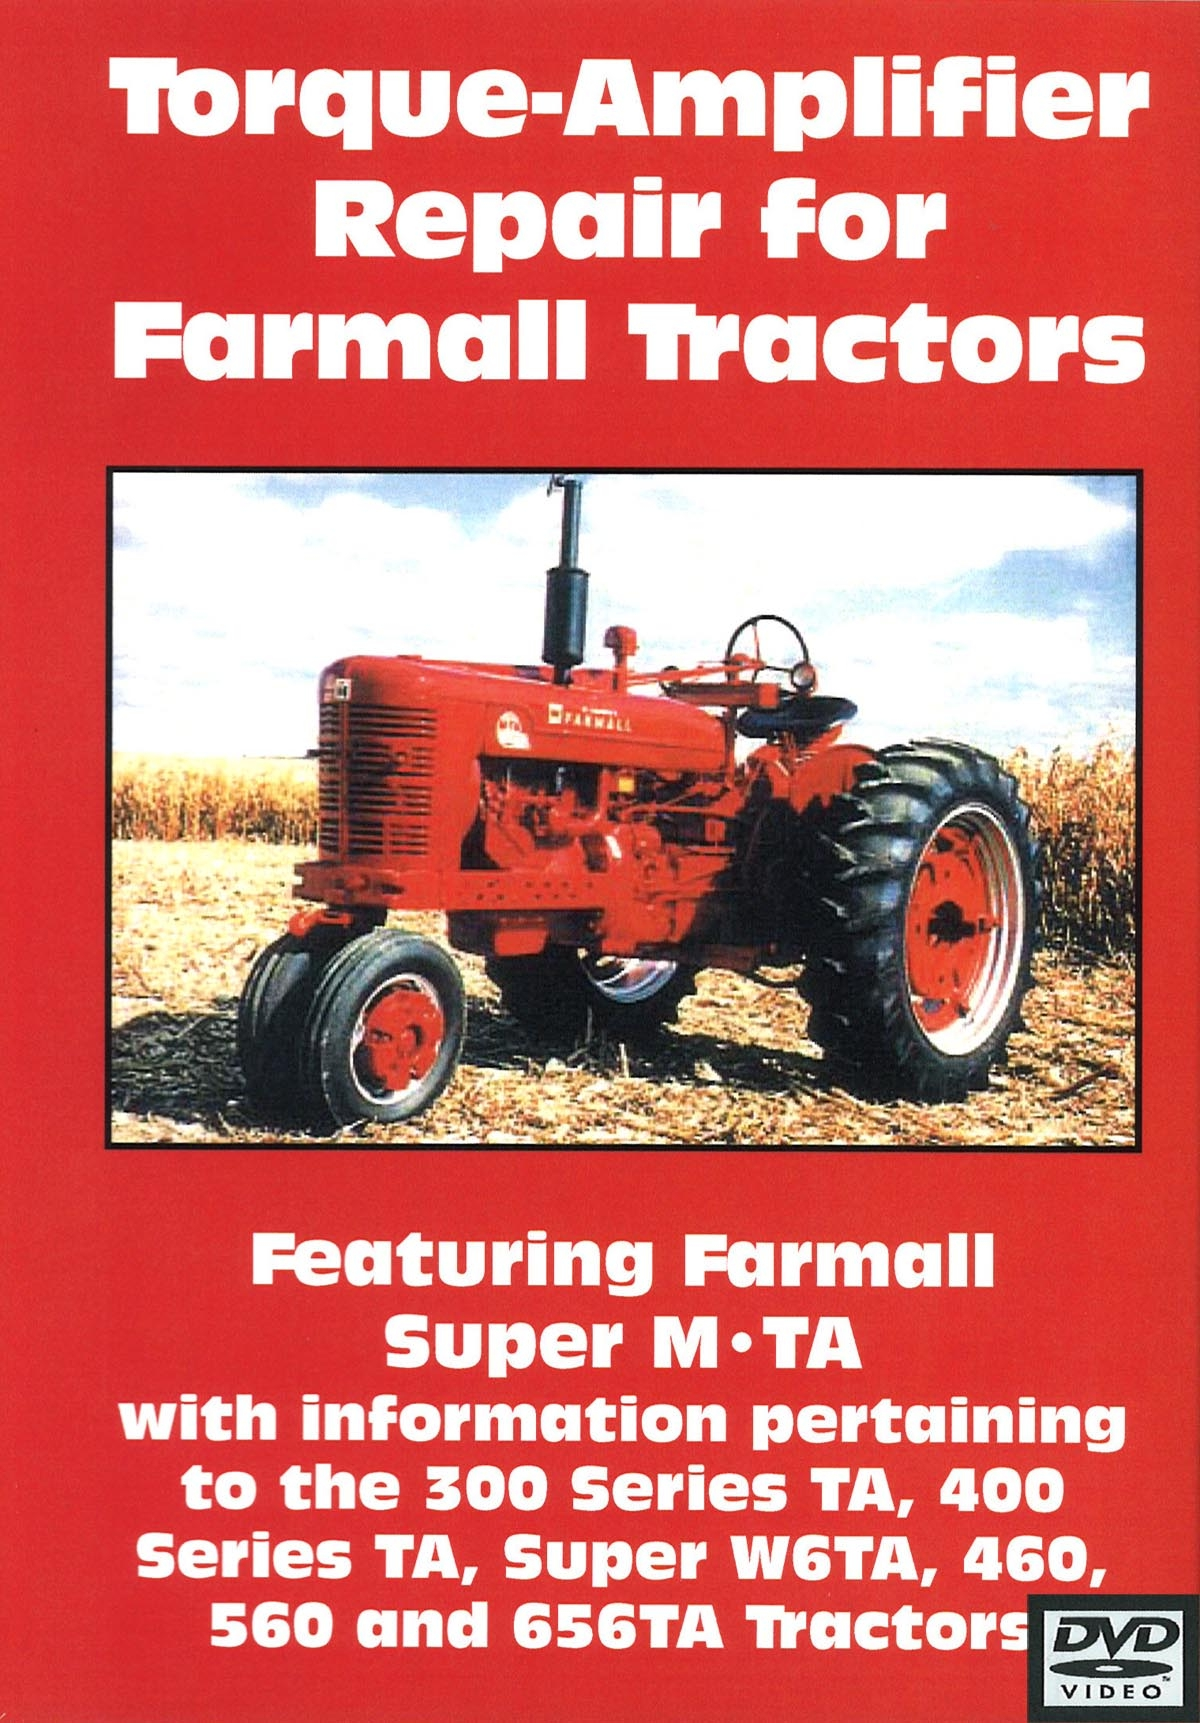 FARMALL TORQUE-AMPLIFIER REPAIR VIDEO (DVD)